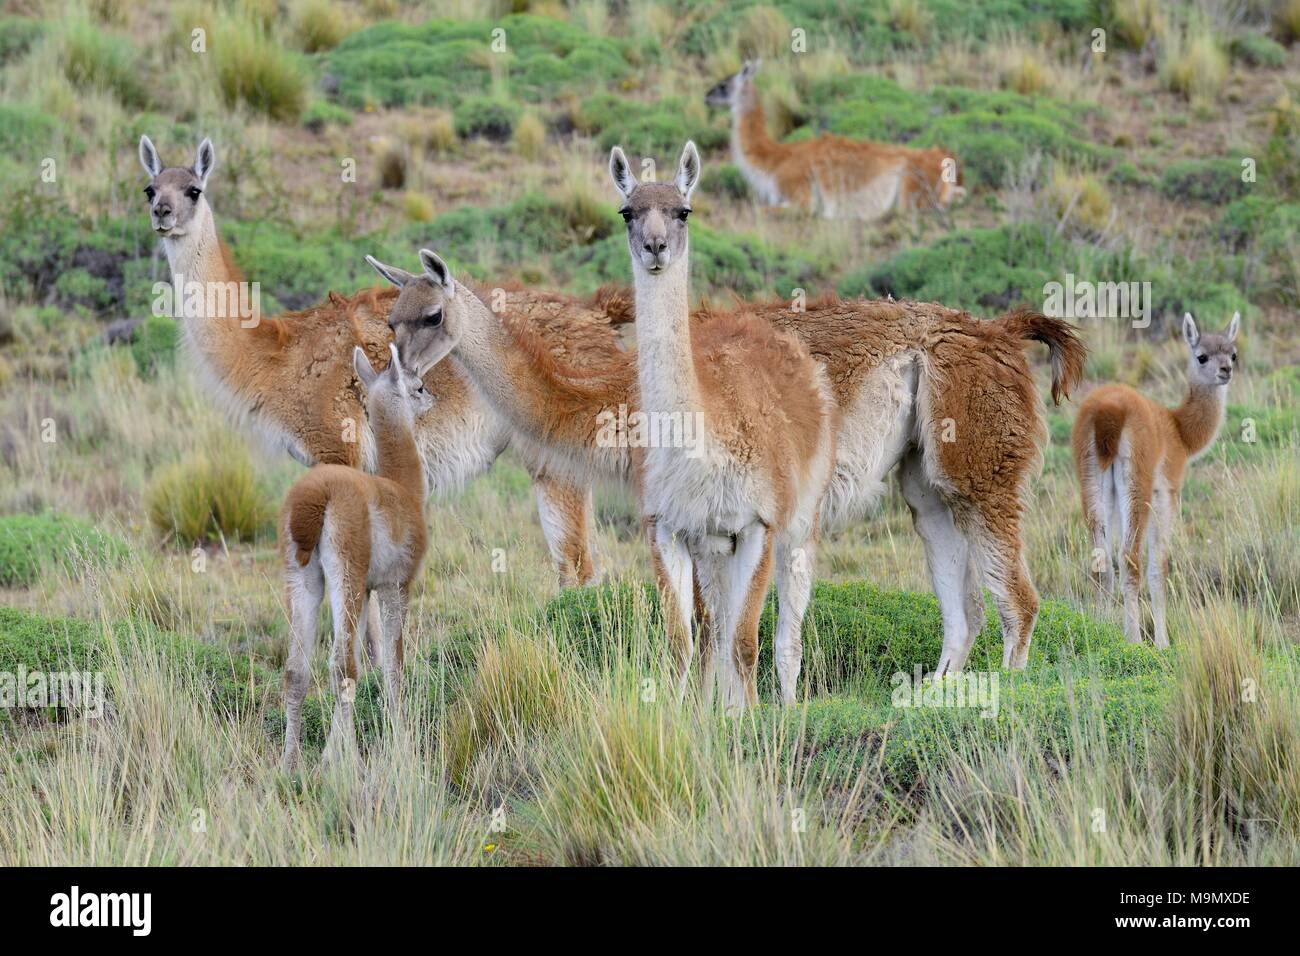 Flock of Guanacos (Lama guanicoe) with young animals, Valle Chacabuco, Región de Aysén, Chile - Stock Image